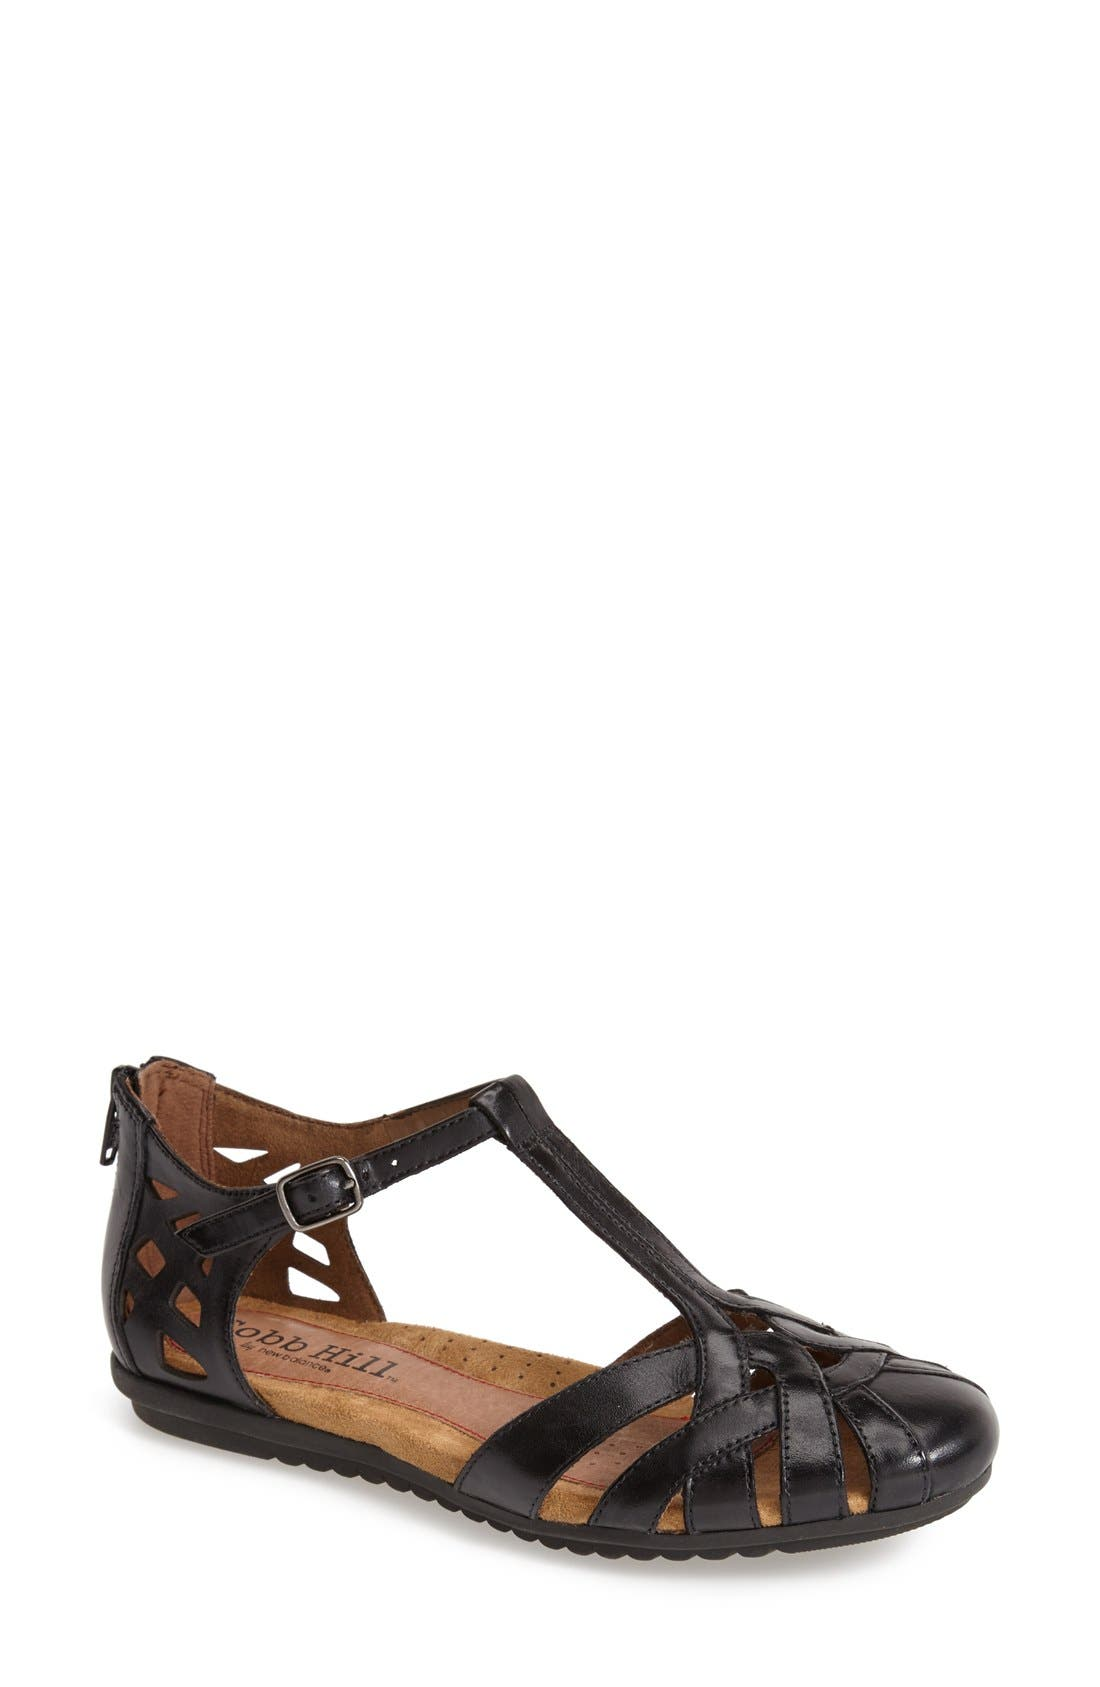 'Ireland' Leather Sandal,                         Main,                         color, Black